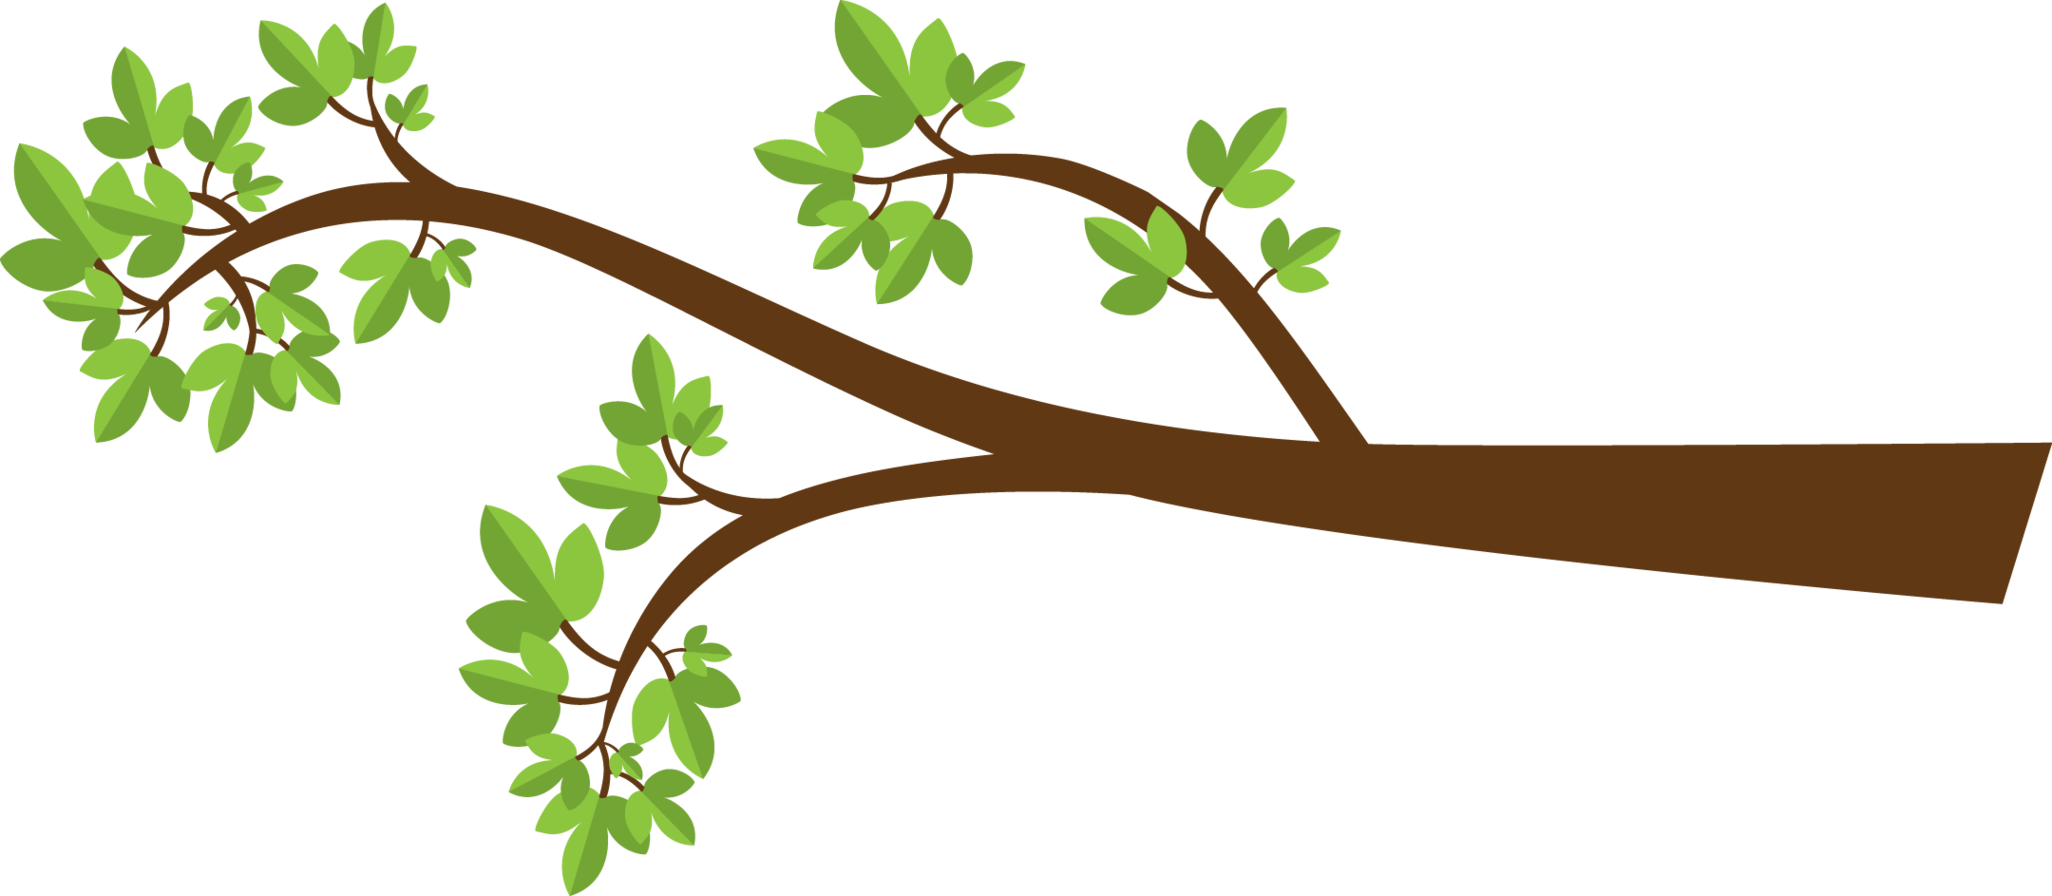 Tree Branches Clip Art. Tree Branch With-Tree Branches Clip Art. Tree Branch With Leaves .-17